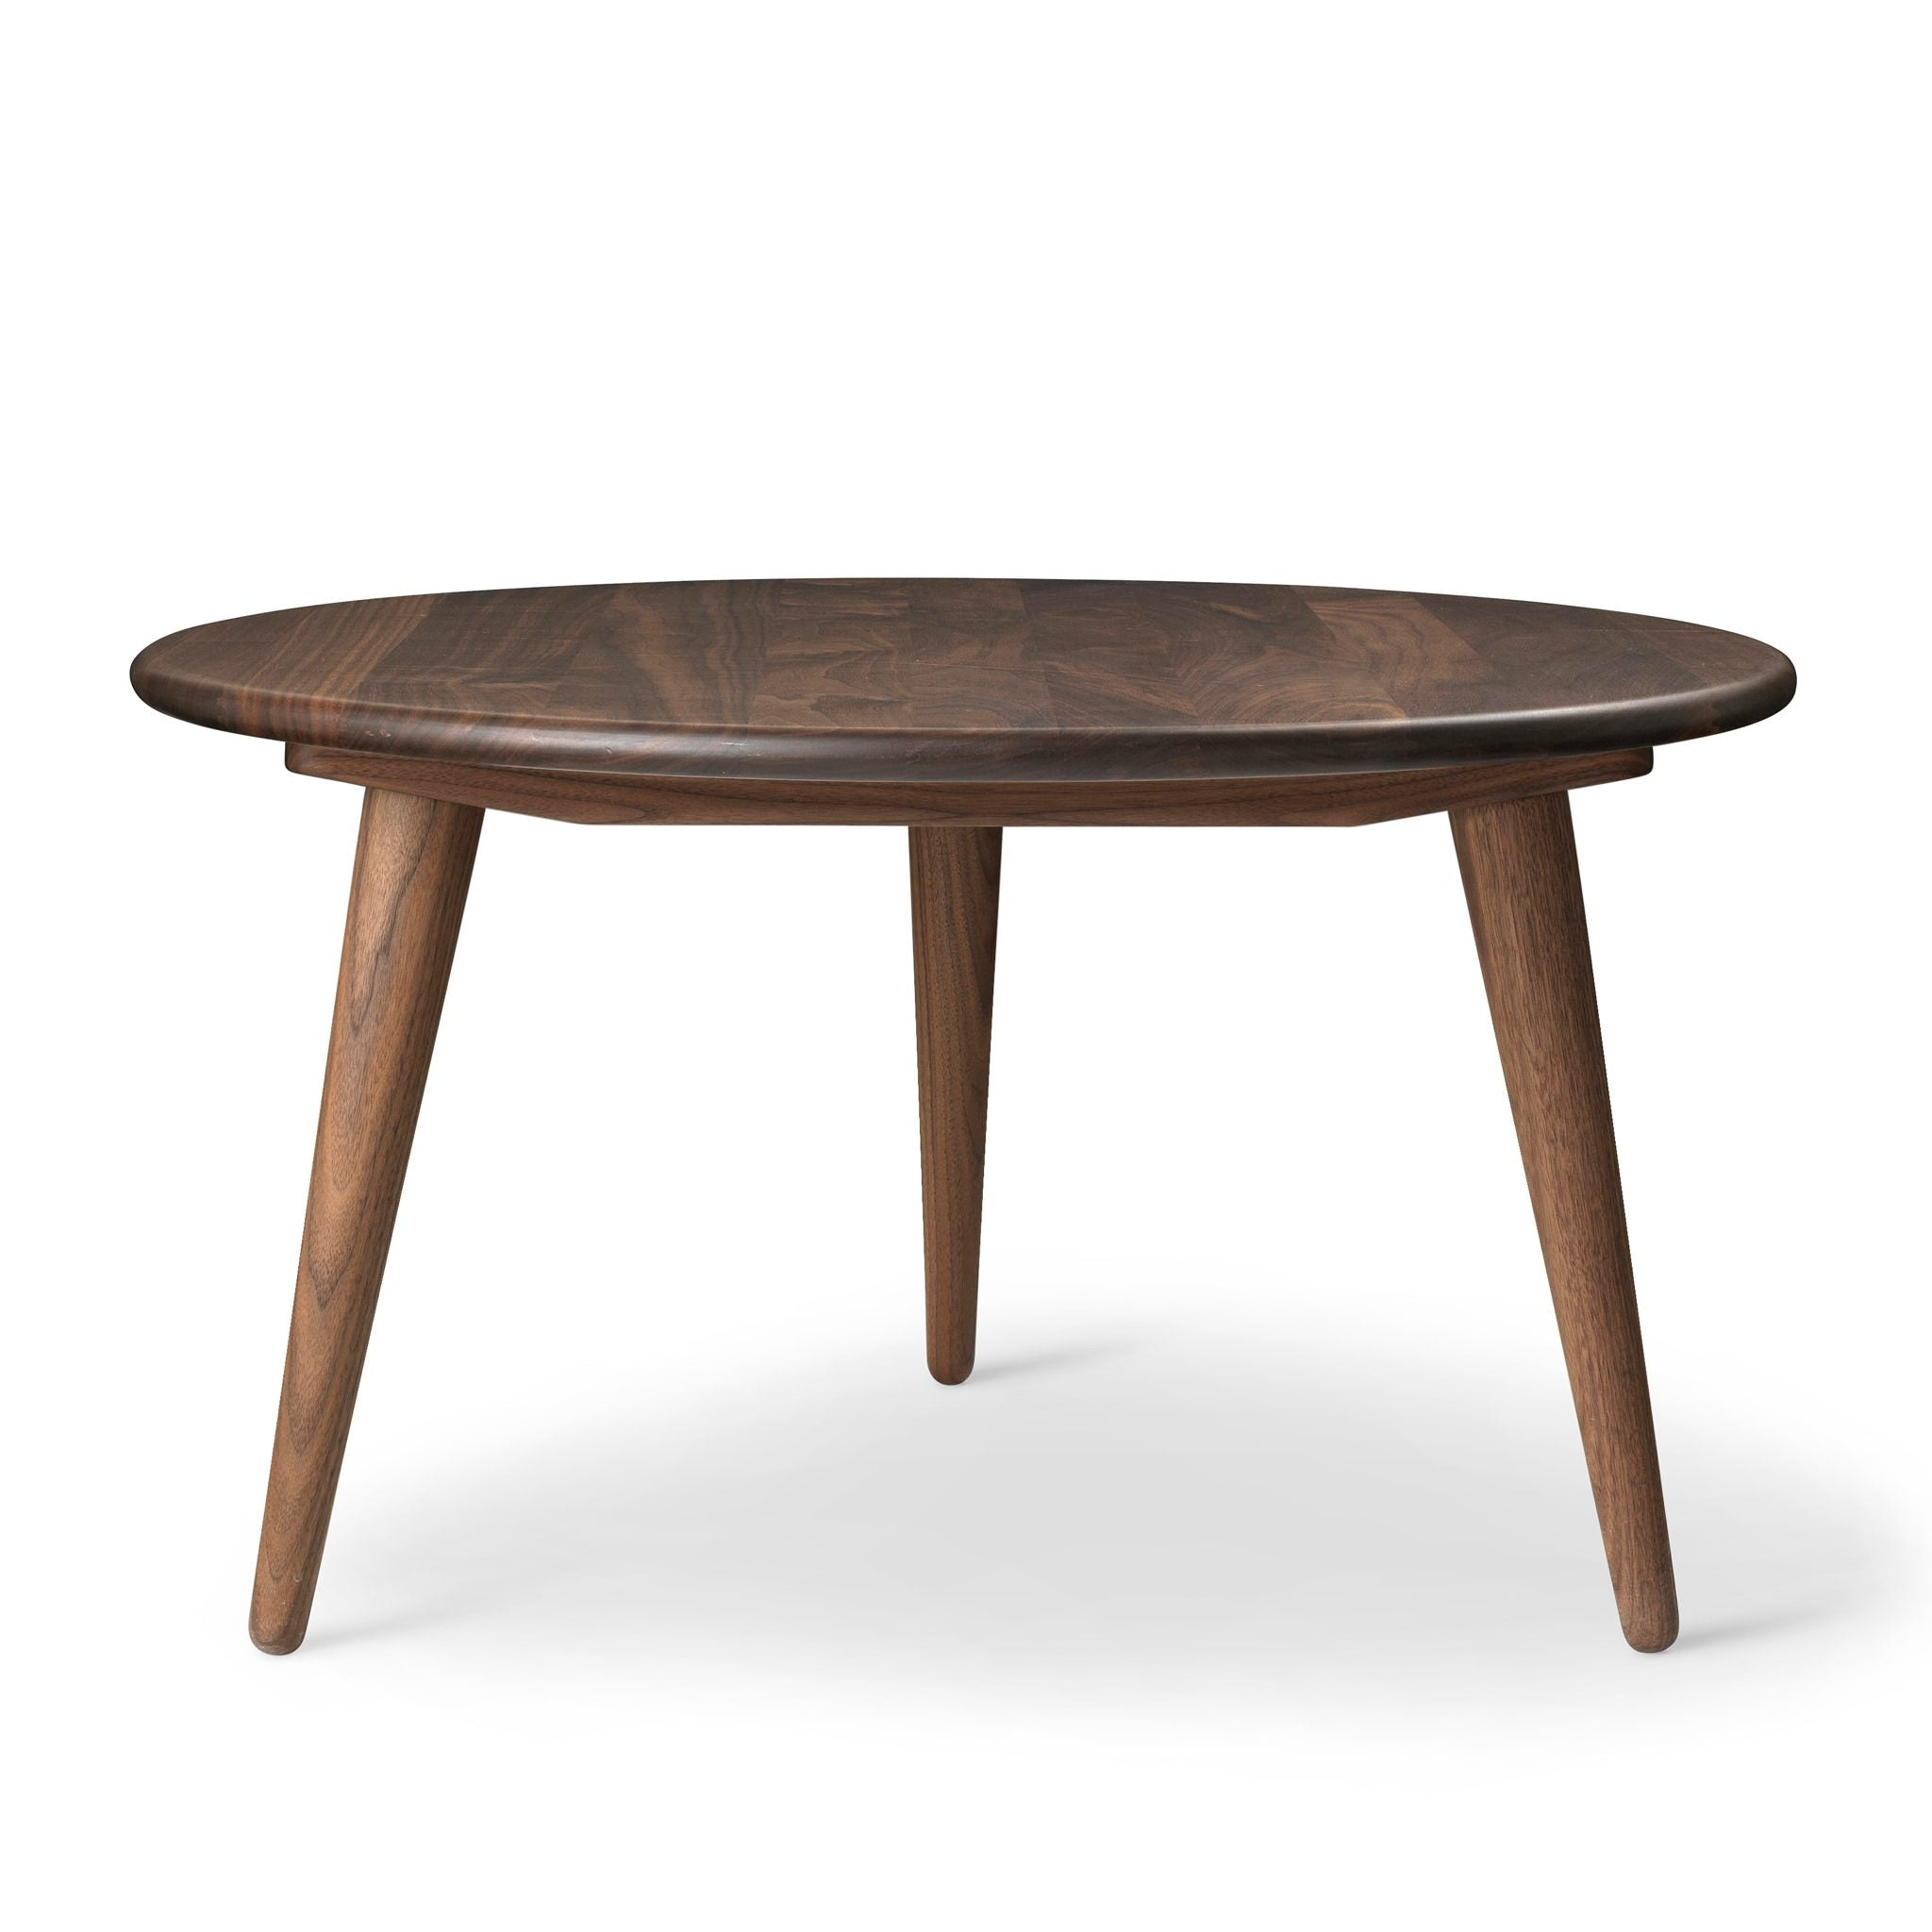 CH008 Table by Carl Hansen & Søn